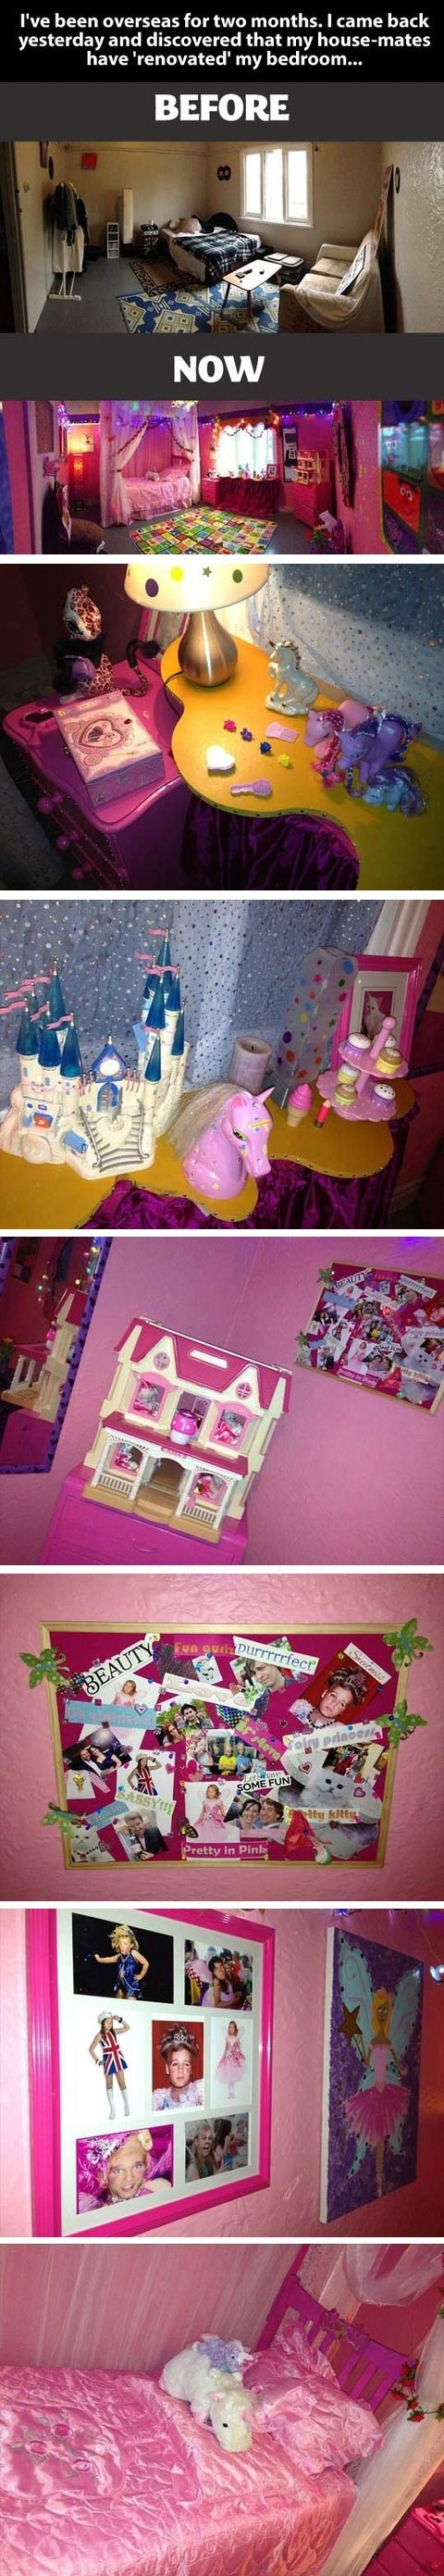 pretty princess room,redecorating,roommate pranks,roommates